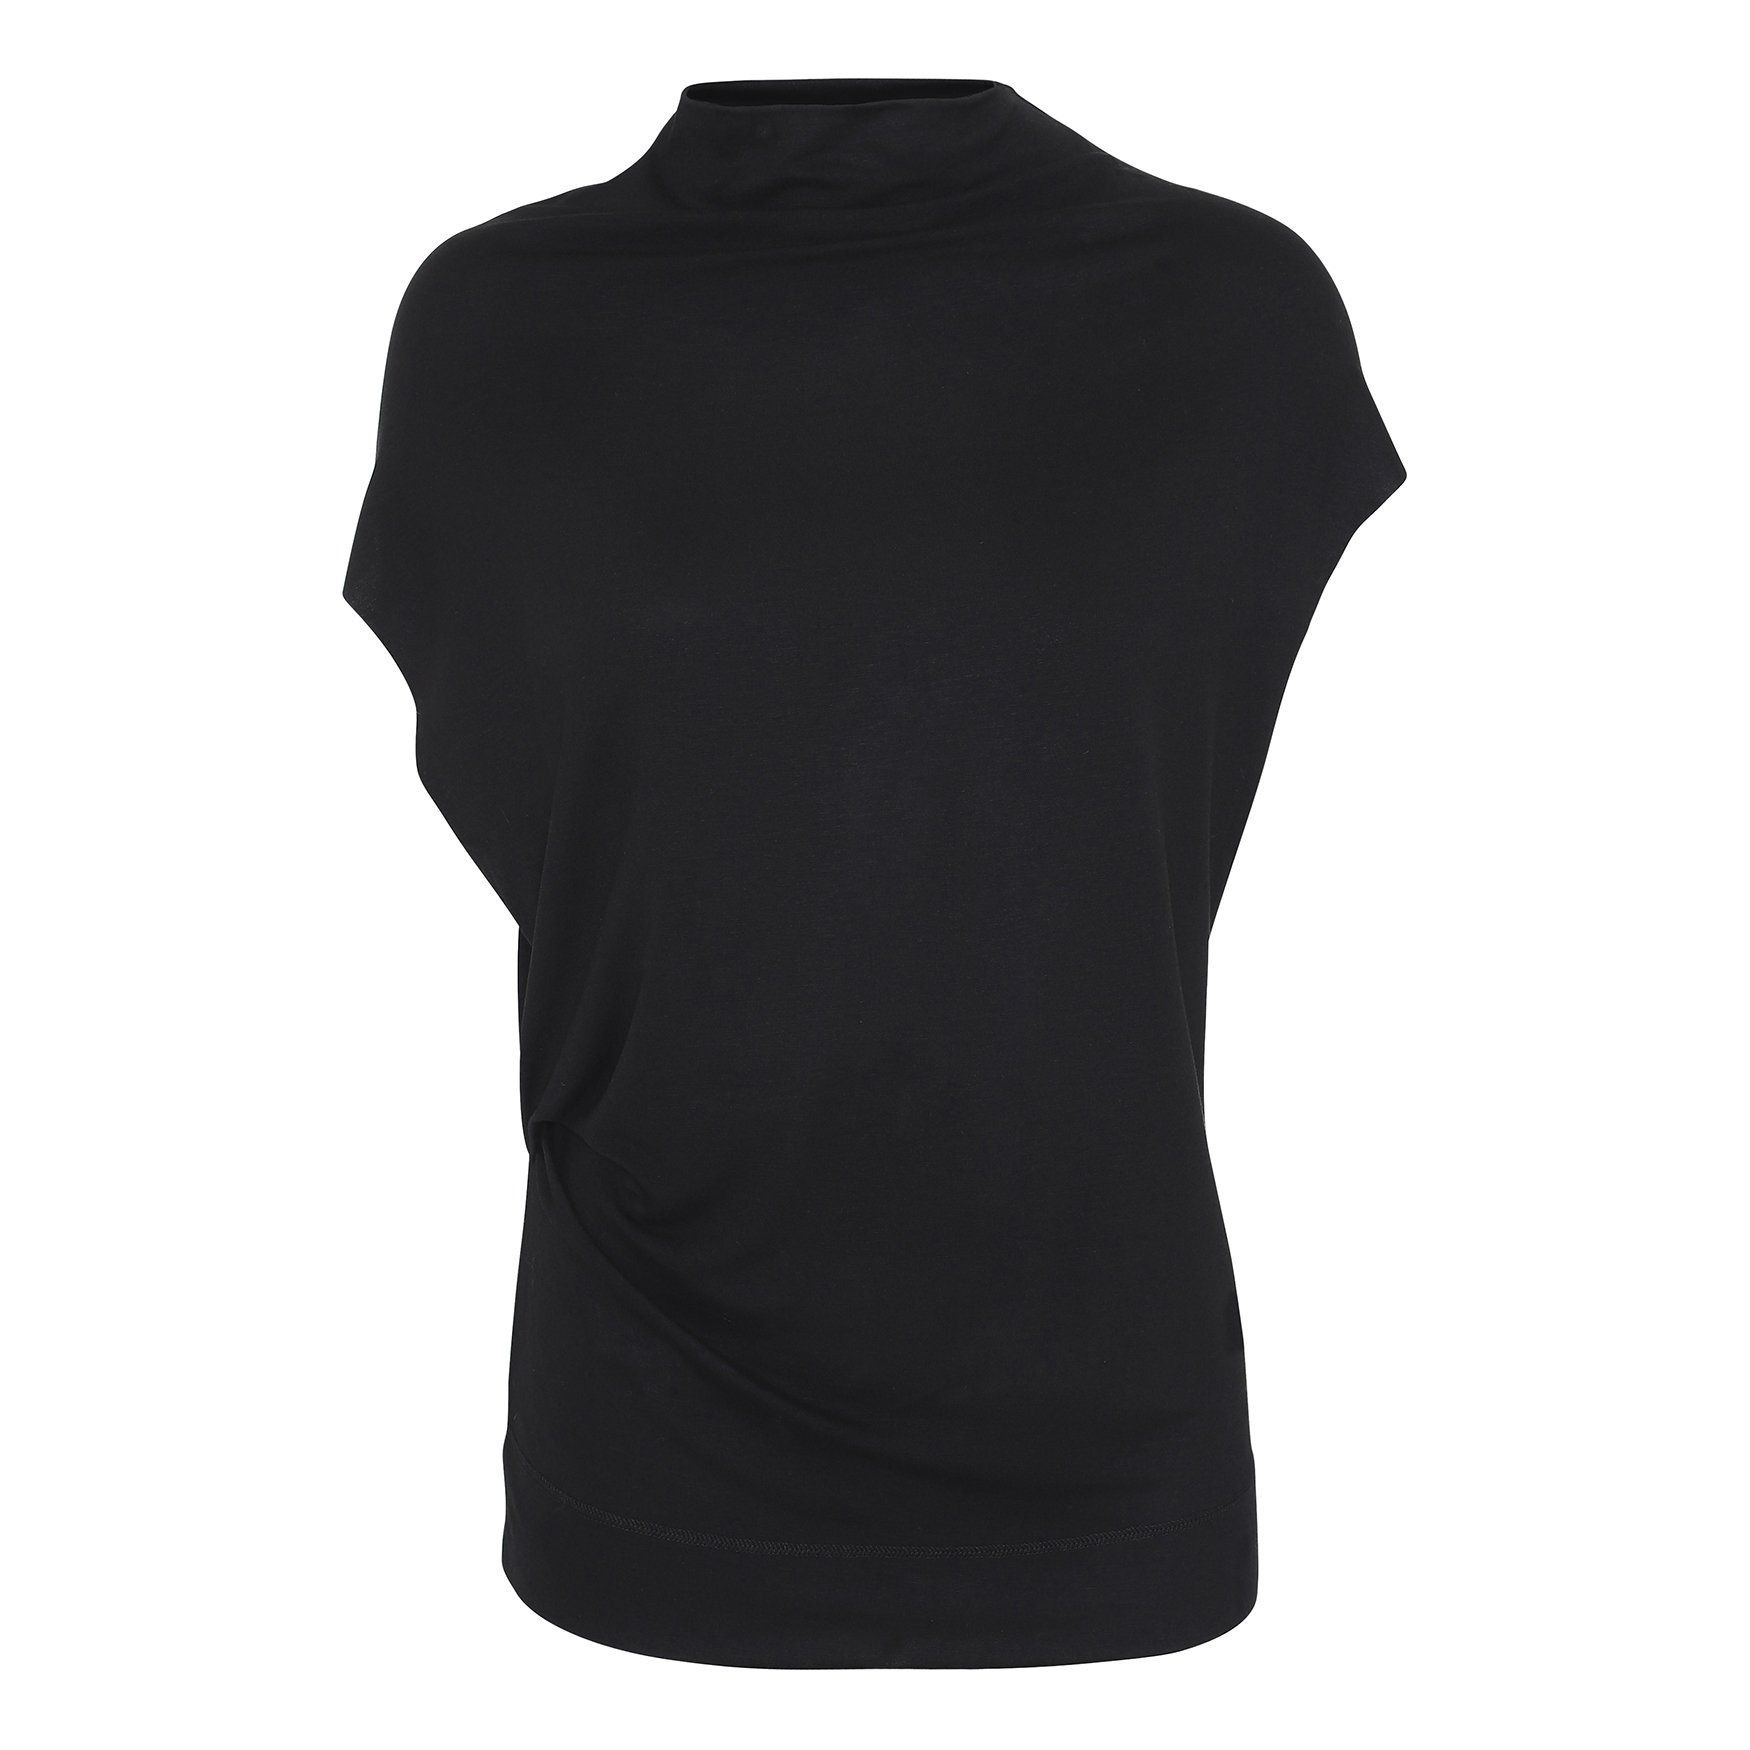 Rabens Saloner  Draped Jersey Tee - Black